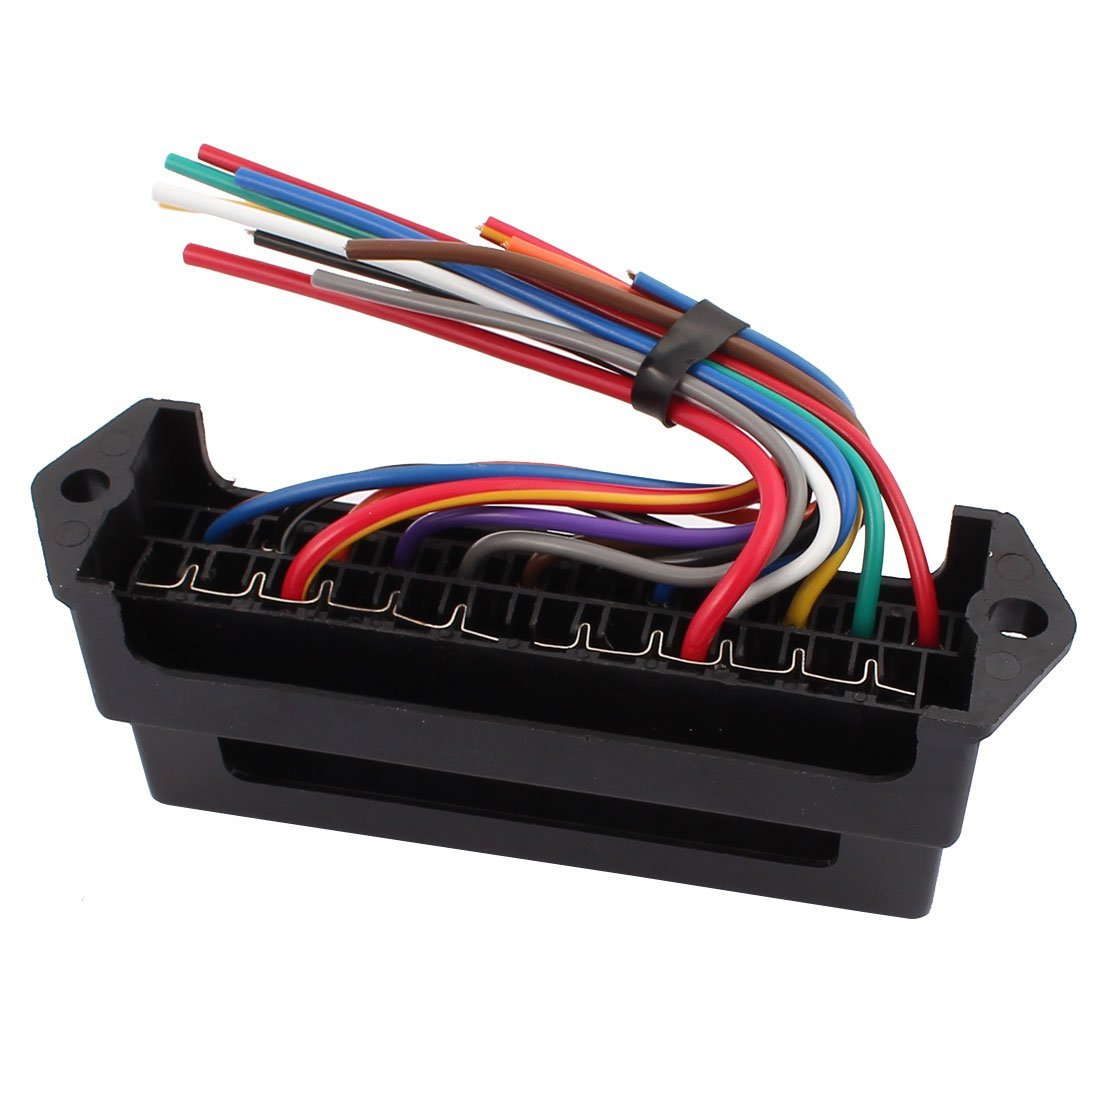 eDealMax HS-0012 12 Road Con Filo modifica di base del blocco Auto Car Fuse Box